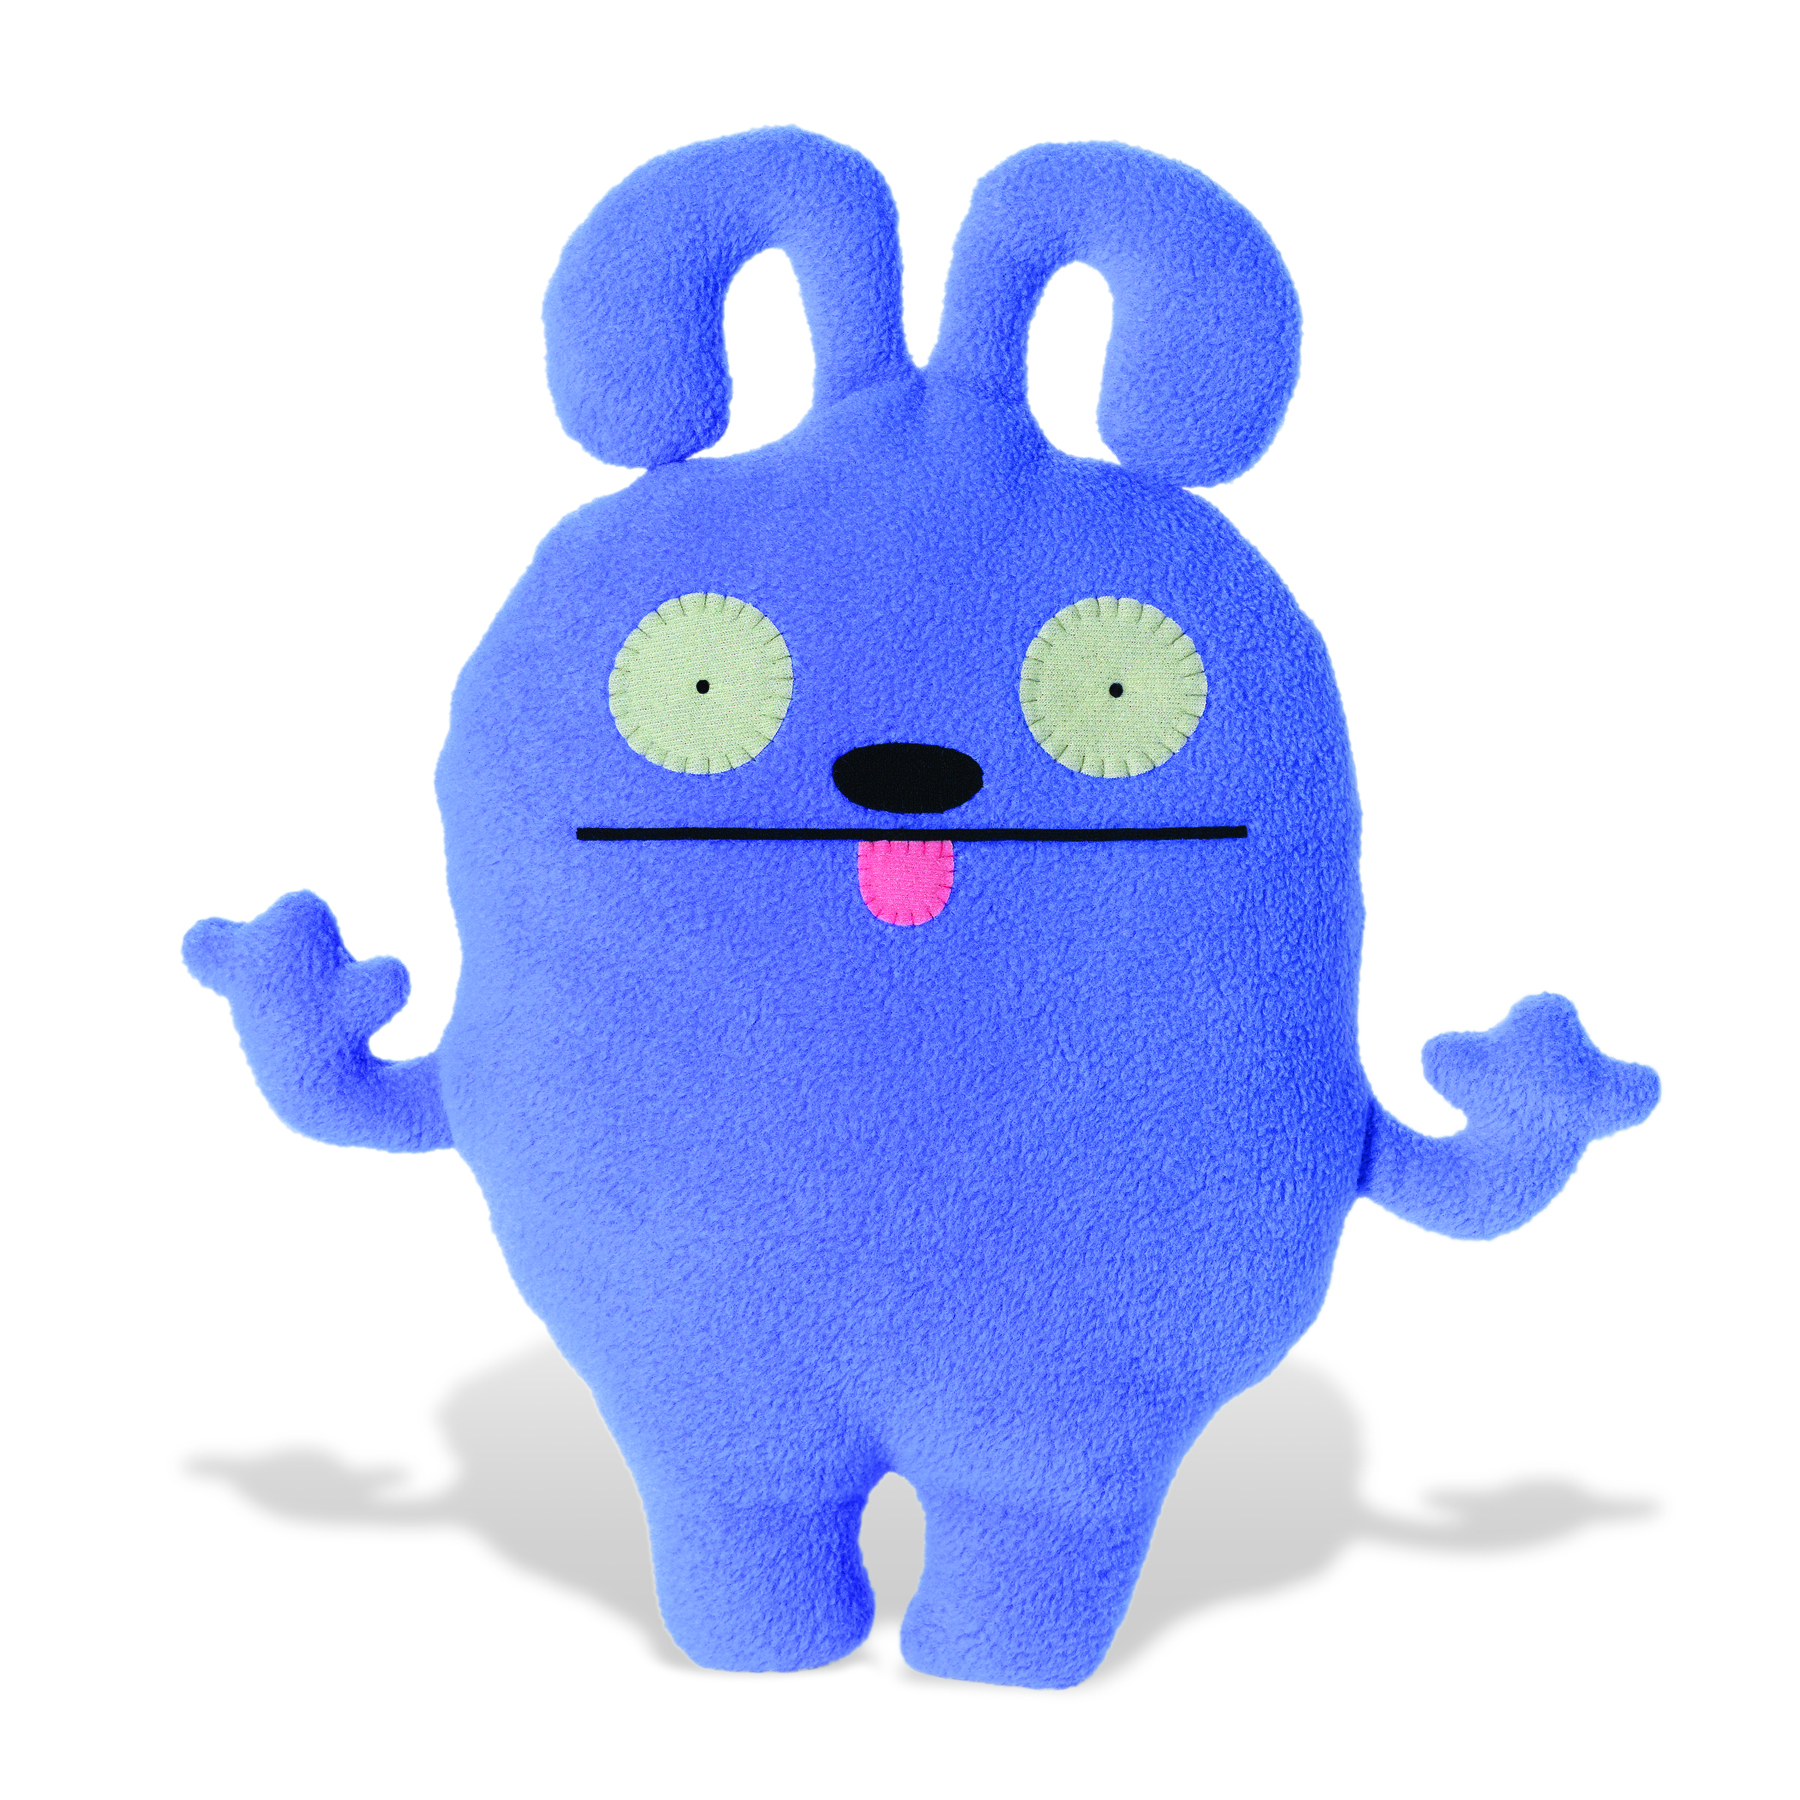 TUB NUBURY UGLYDOLL 12IN PLUSH